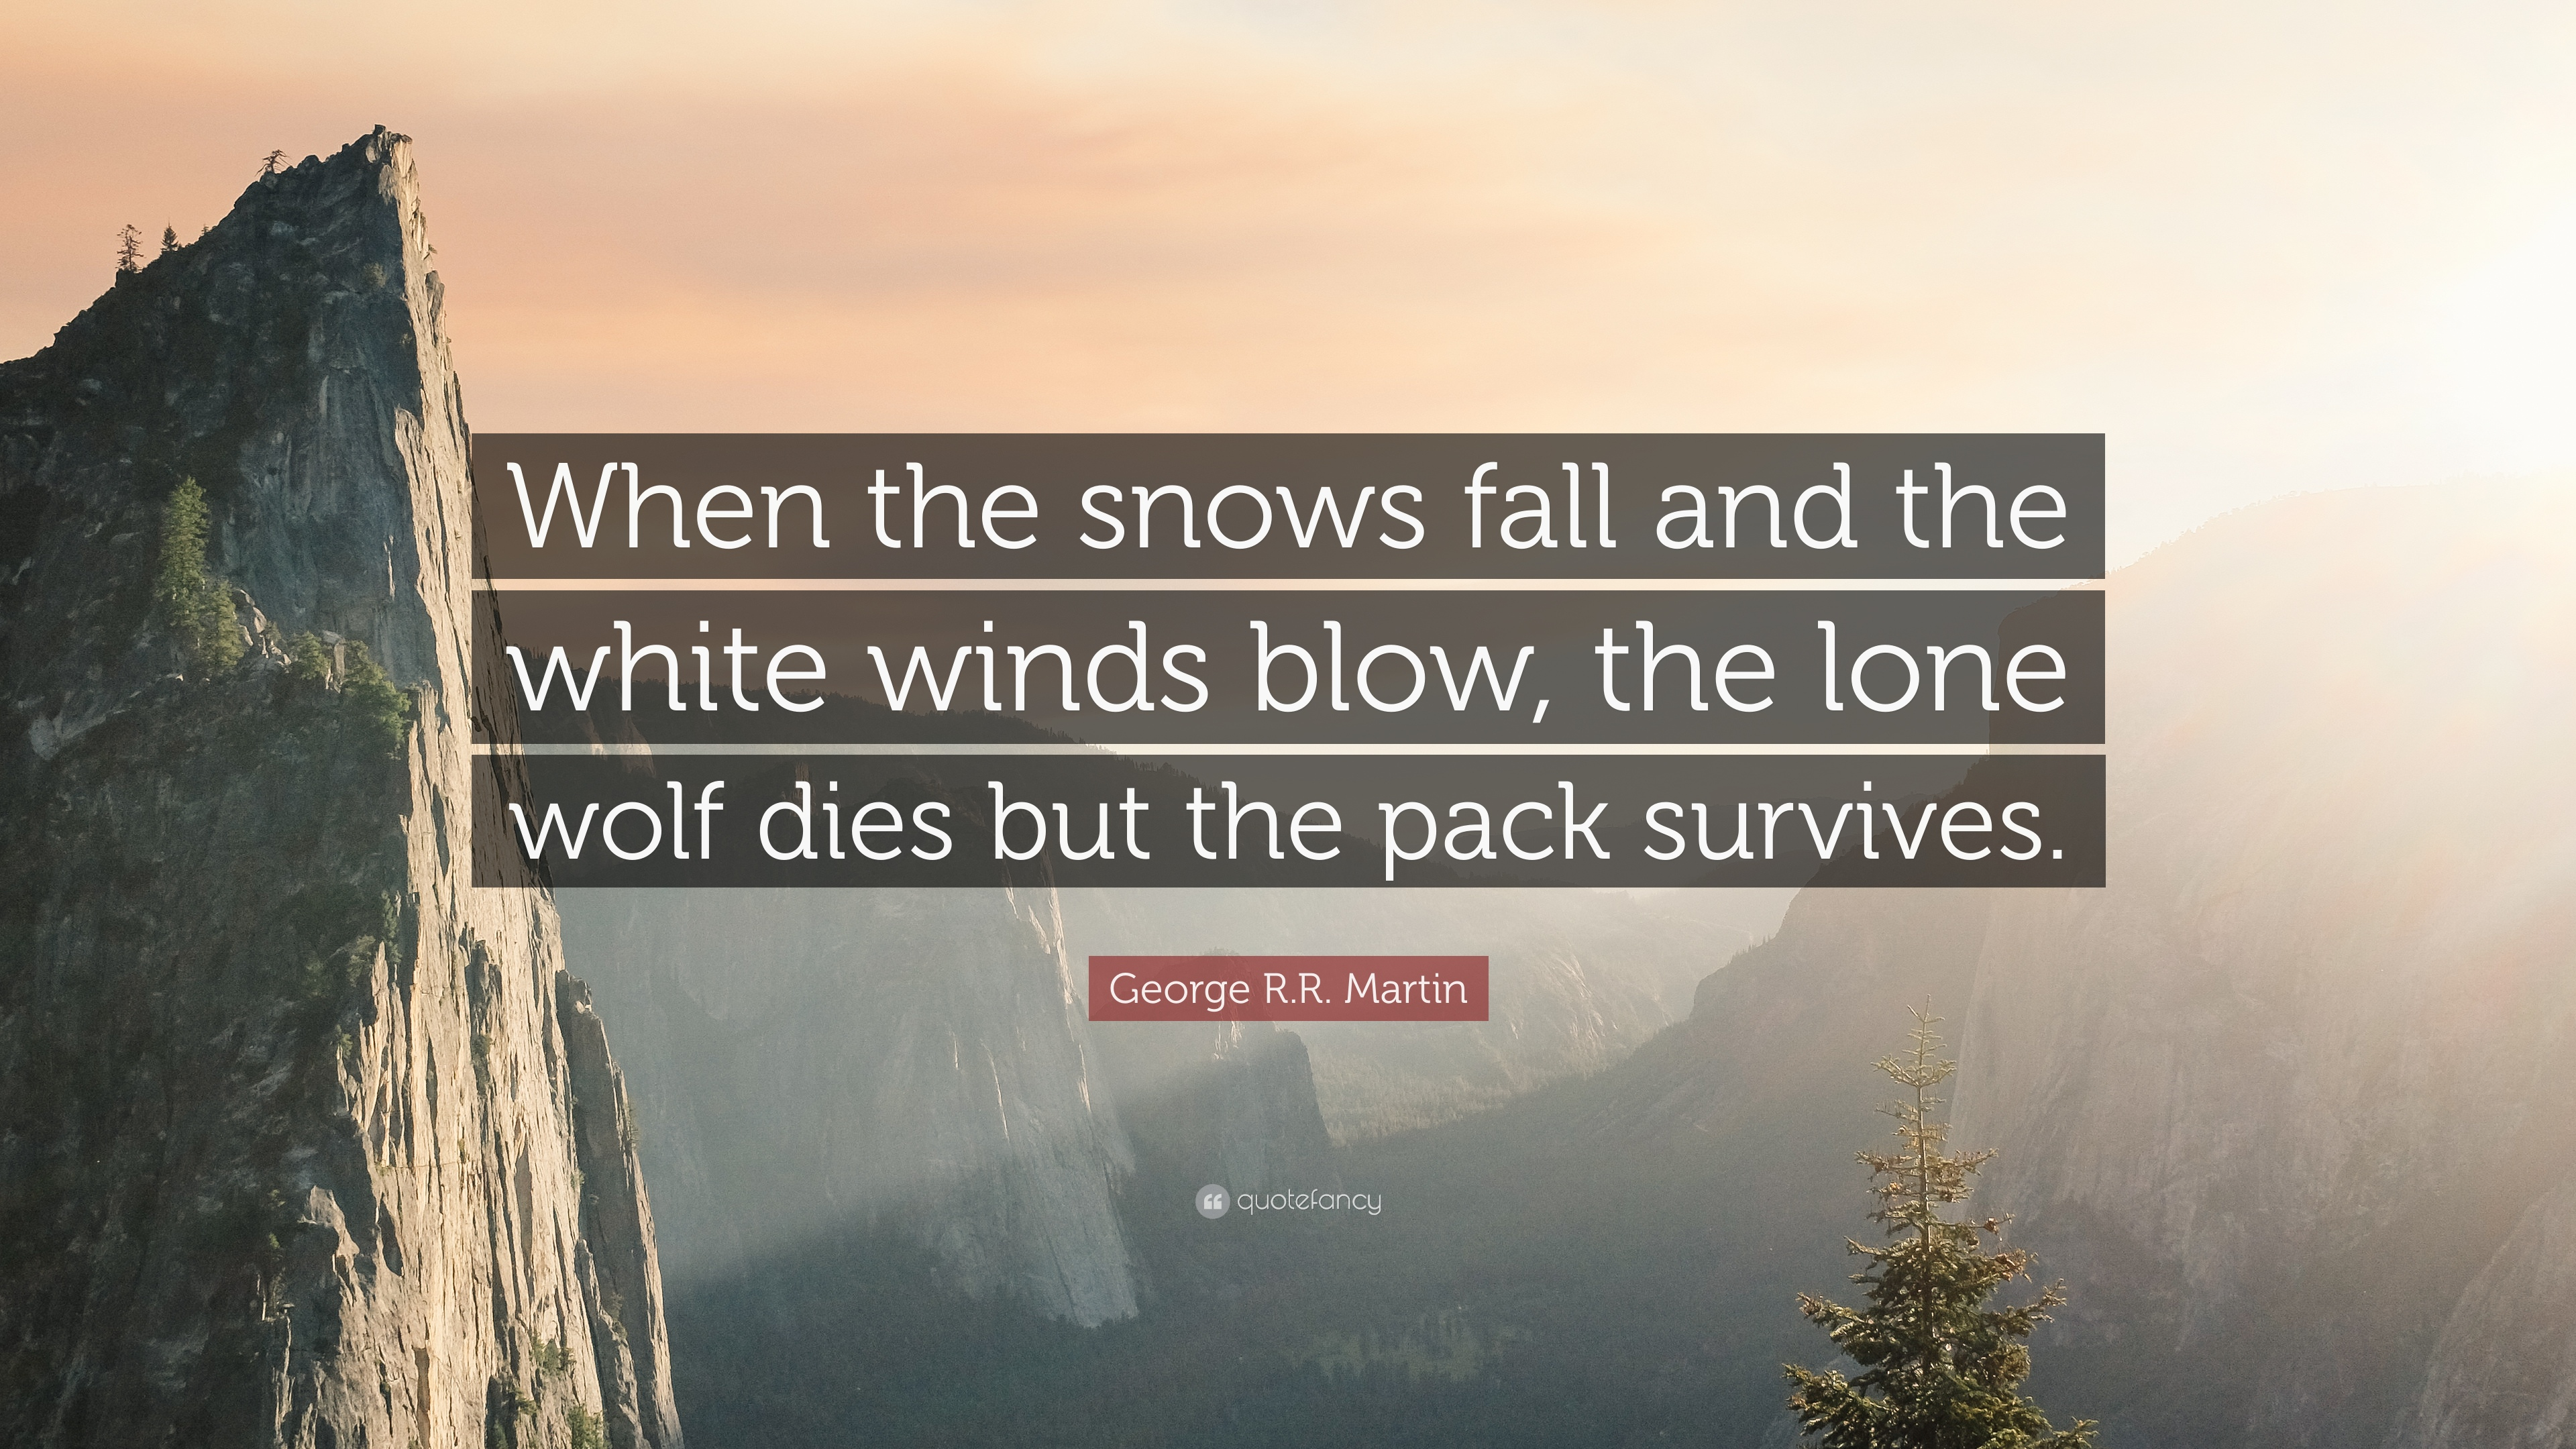 Roald Dahl Quotes Wallpaper George R R Martin Quote When The Snows Fall And The